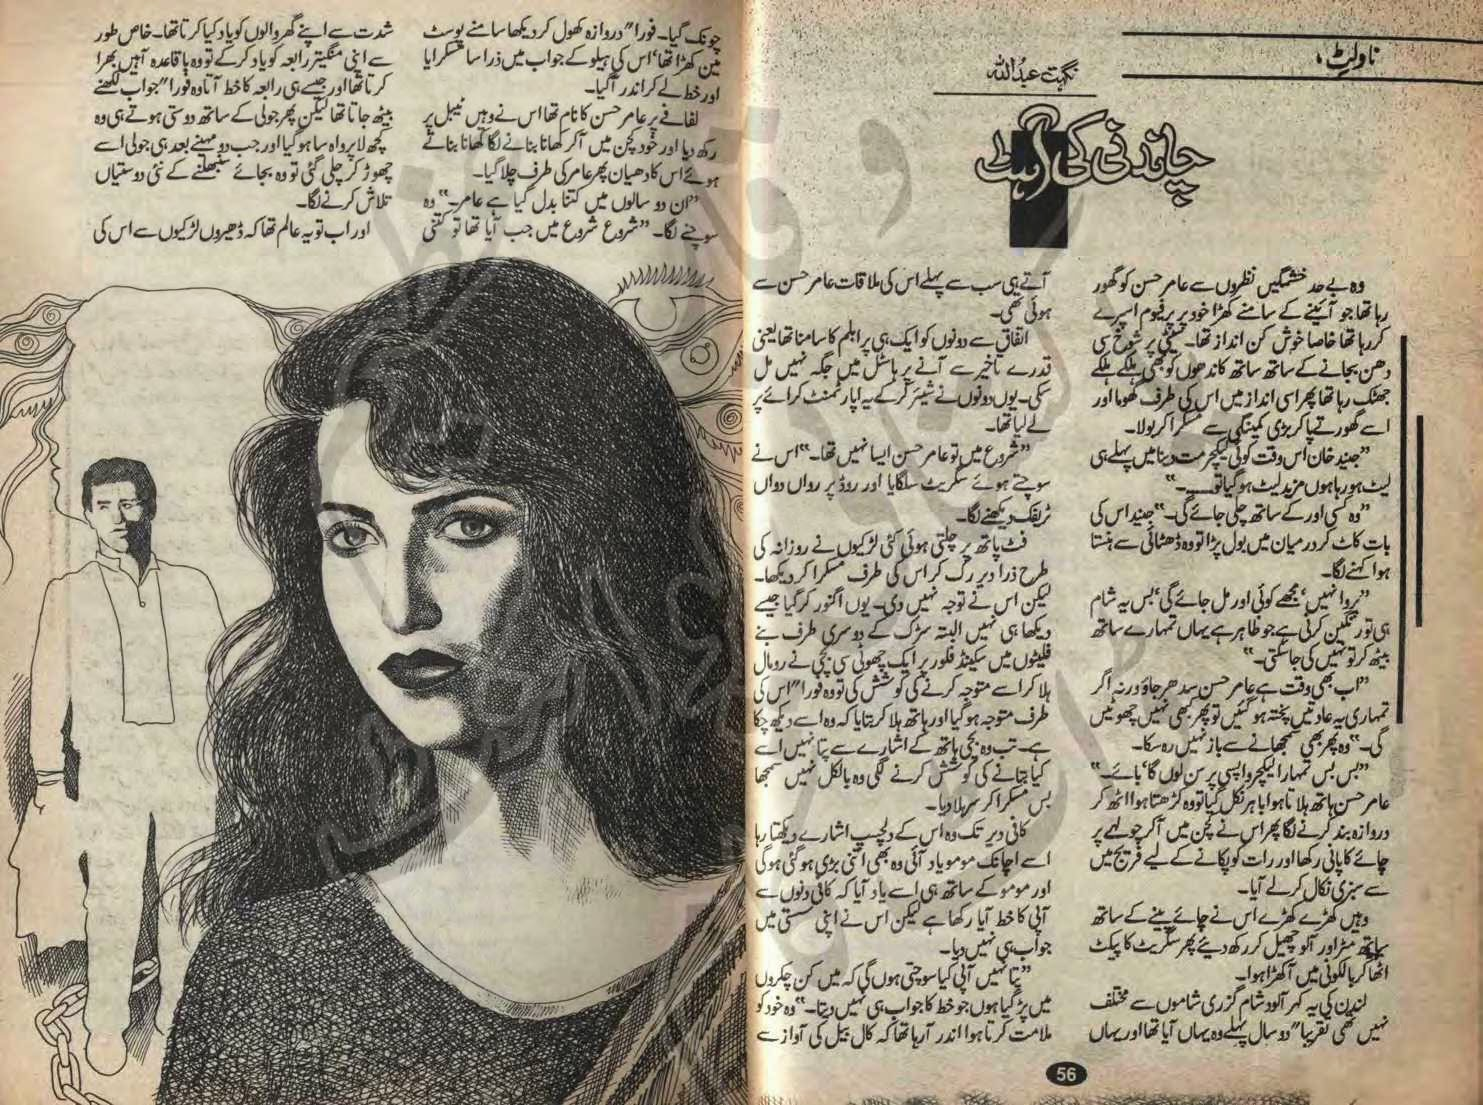 kitab dost chandani ki aahat novel by nighat abdullah online reading click on the more button to continue reading